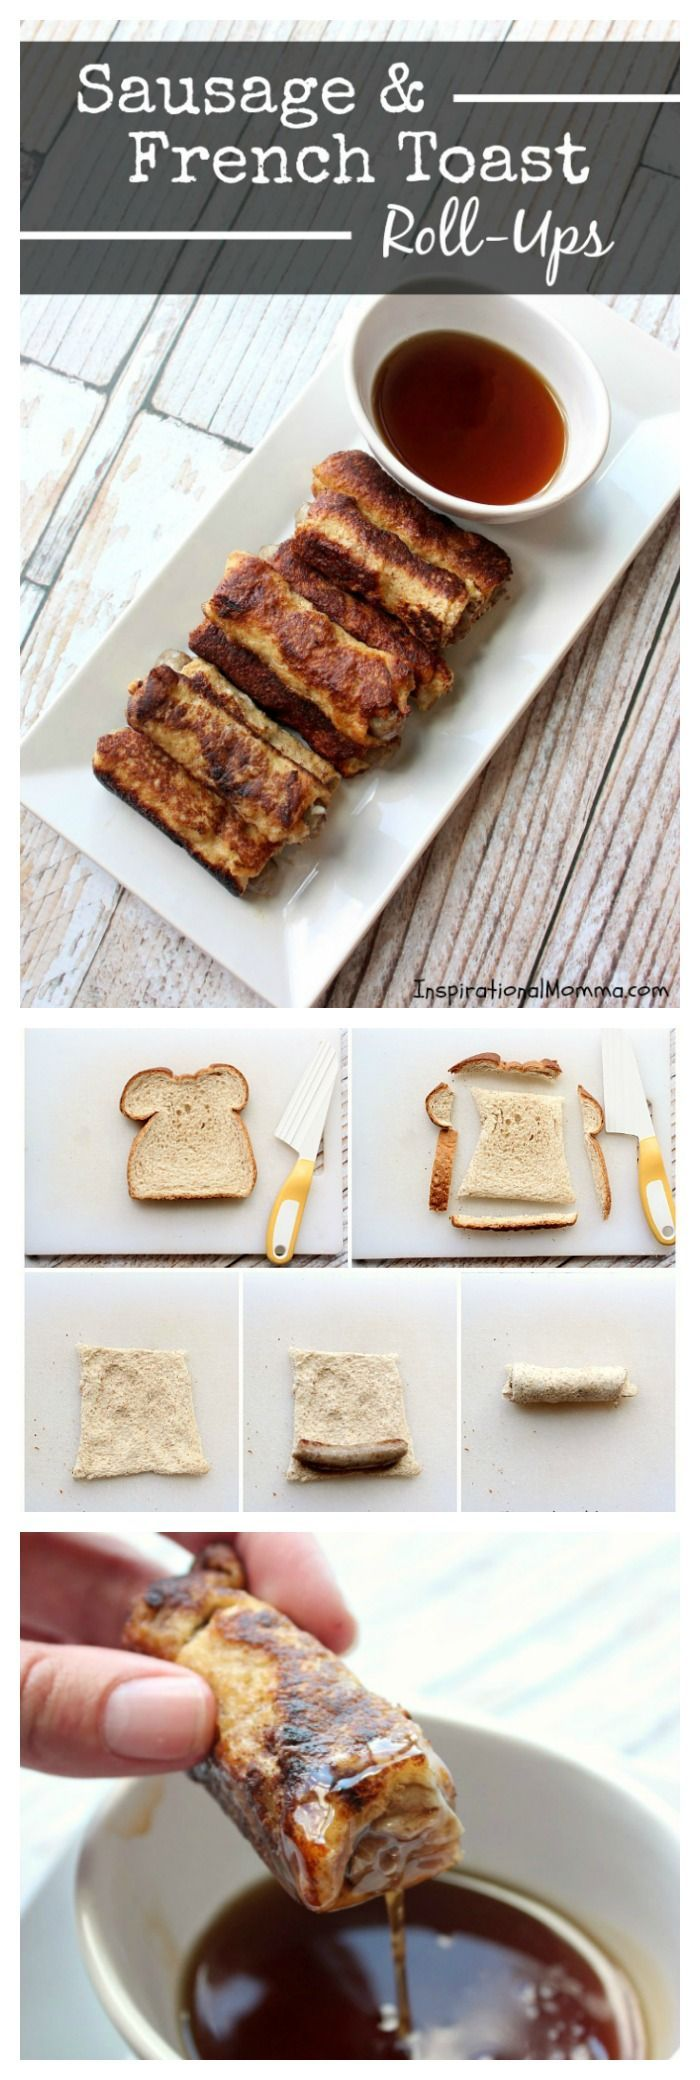 Quick, easy, and delicious, Sausage & French Toast Roll-Ups are crispy on the outside and bursting with flavor on the inside! A guaranteed crowd-pleaser!